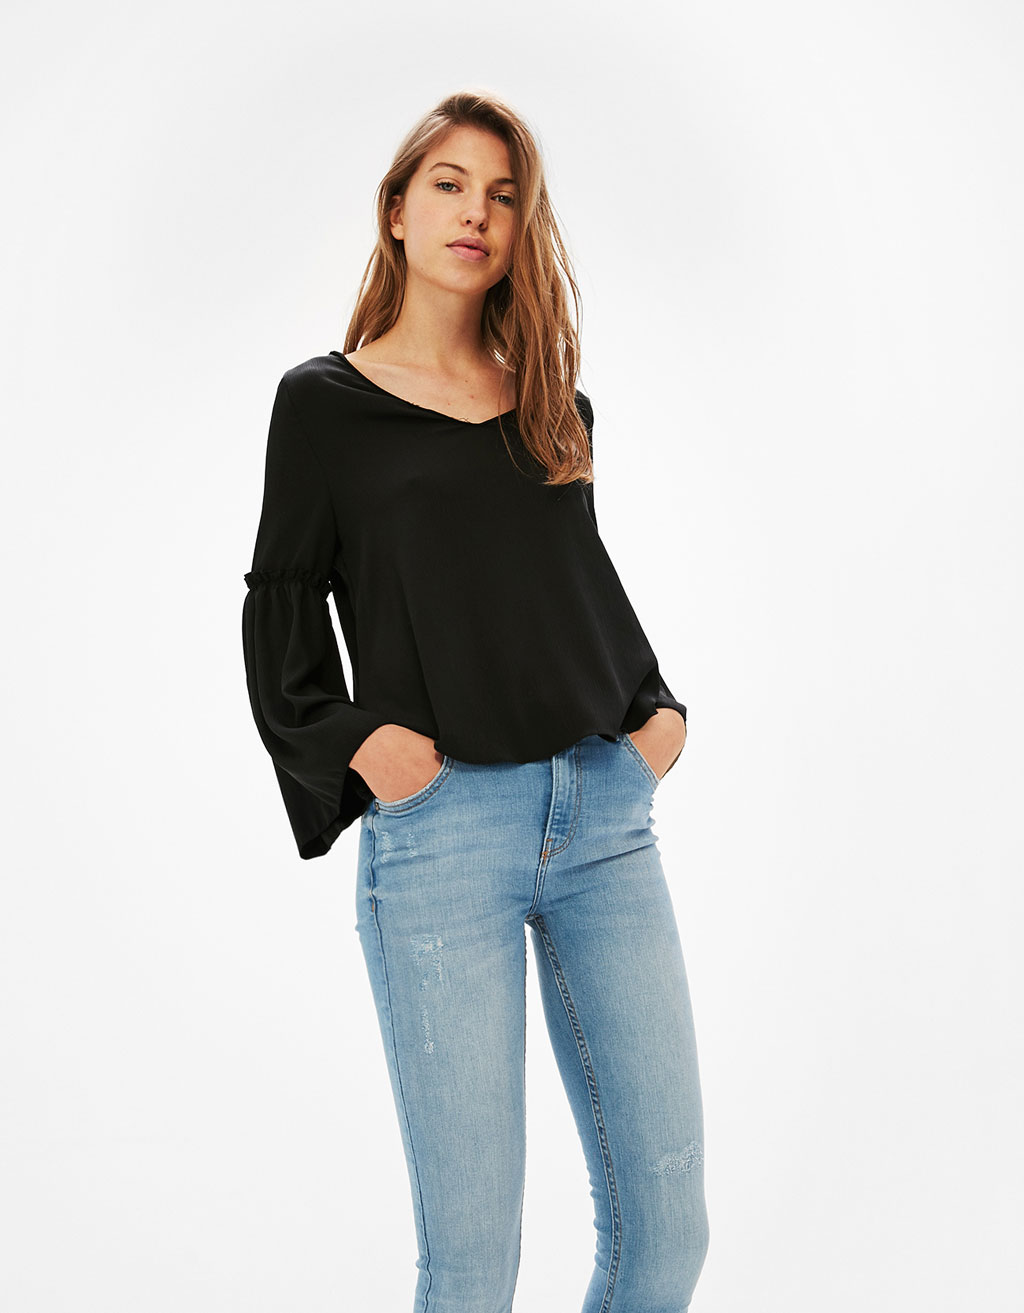 Pleated blouse with flared sleeve with gathering